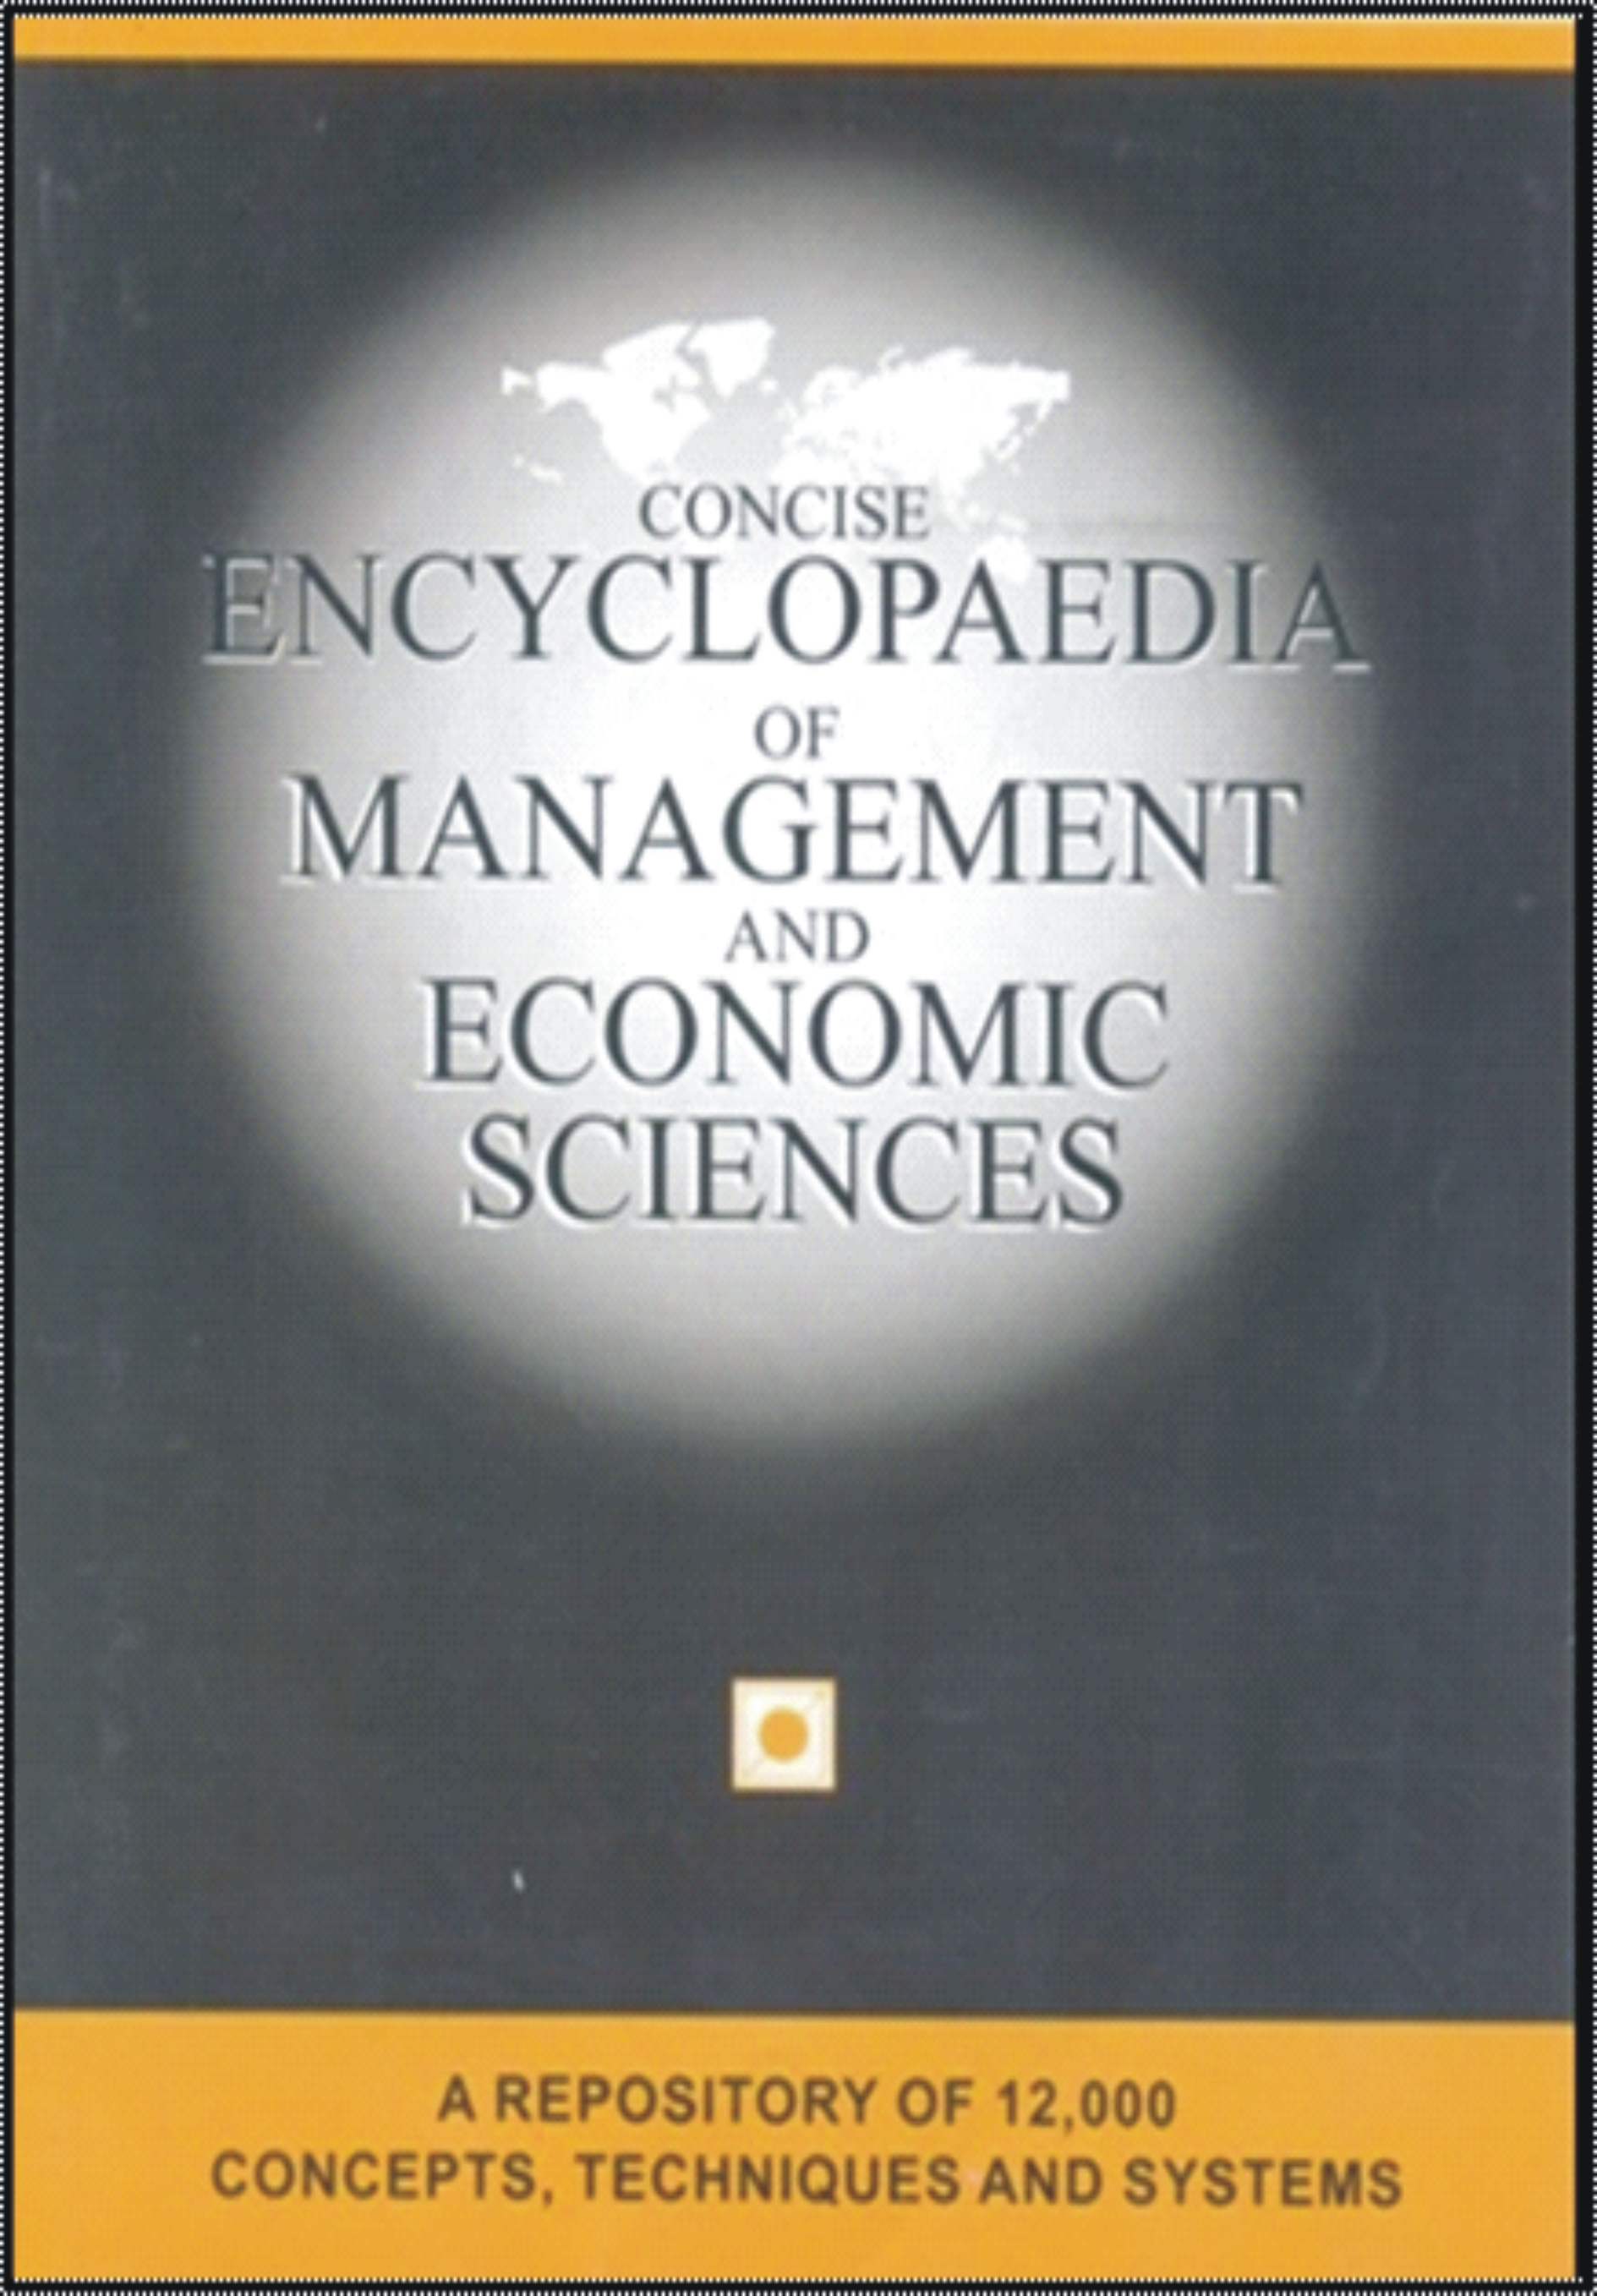 Concise Encyclopaedia of Management and Economic Sciences